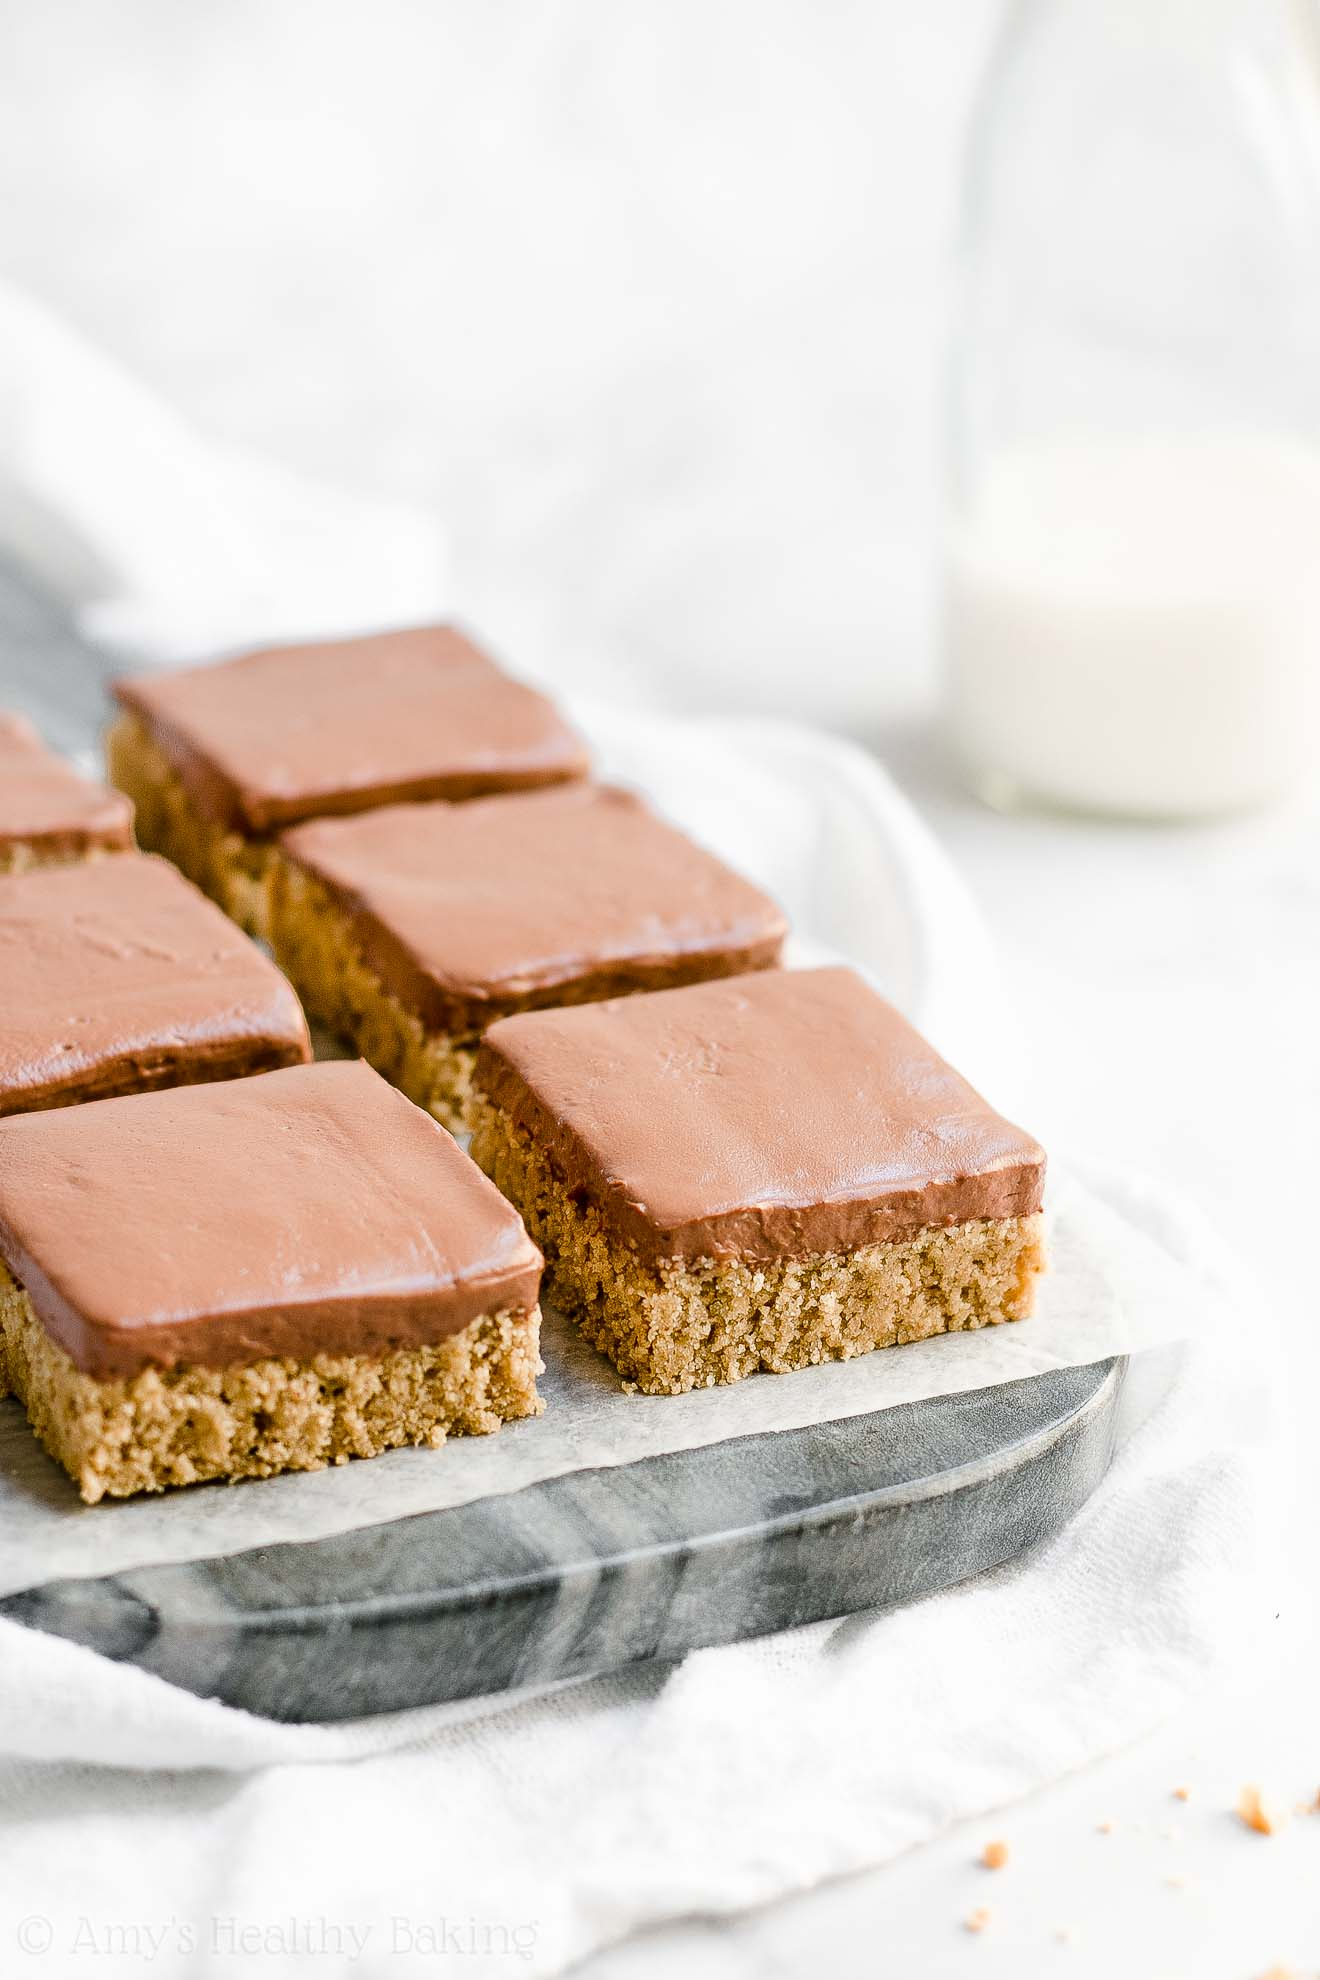 Healthy Flourless Peanut Butter Cookie Bars with Weight Watchers Points